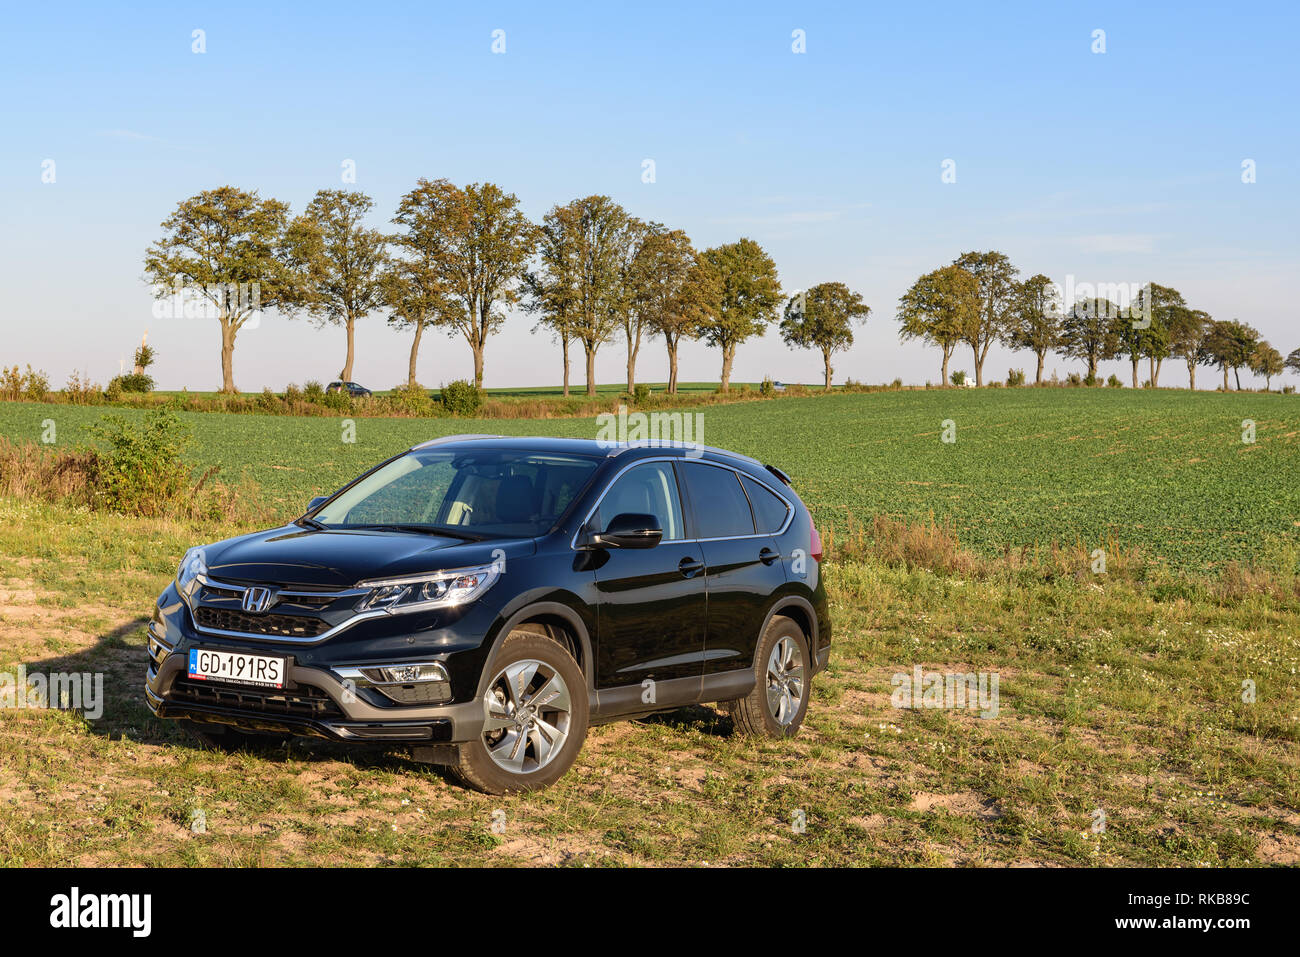 PUCK, POLAND - September 18, 2018: Honda CR-V car parked in a field on a country road next to a wind farm - Stock Image